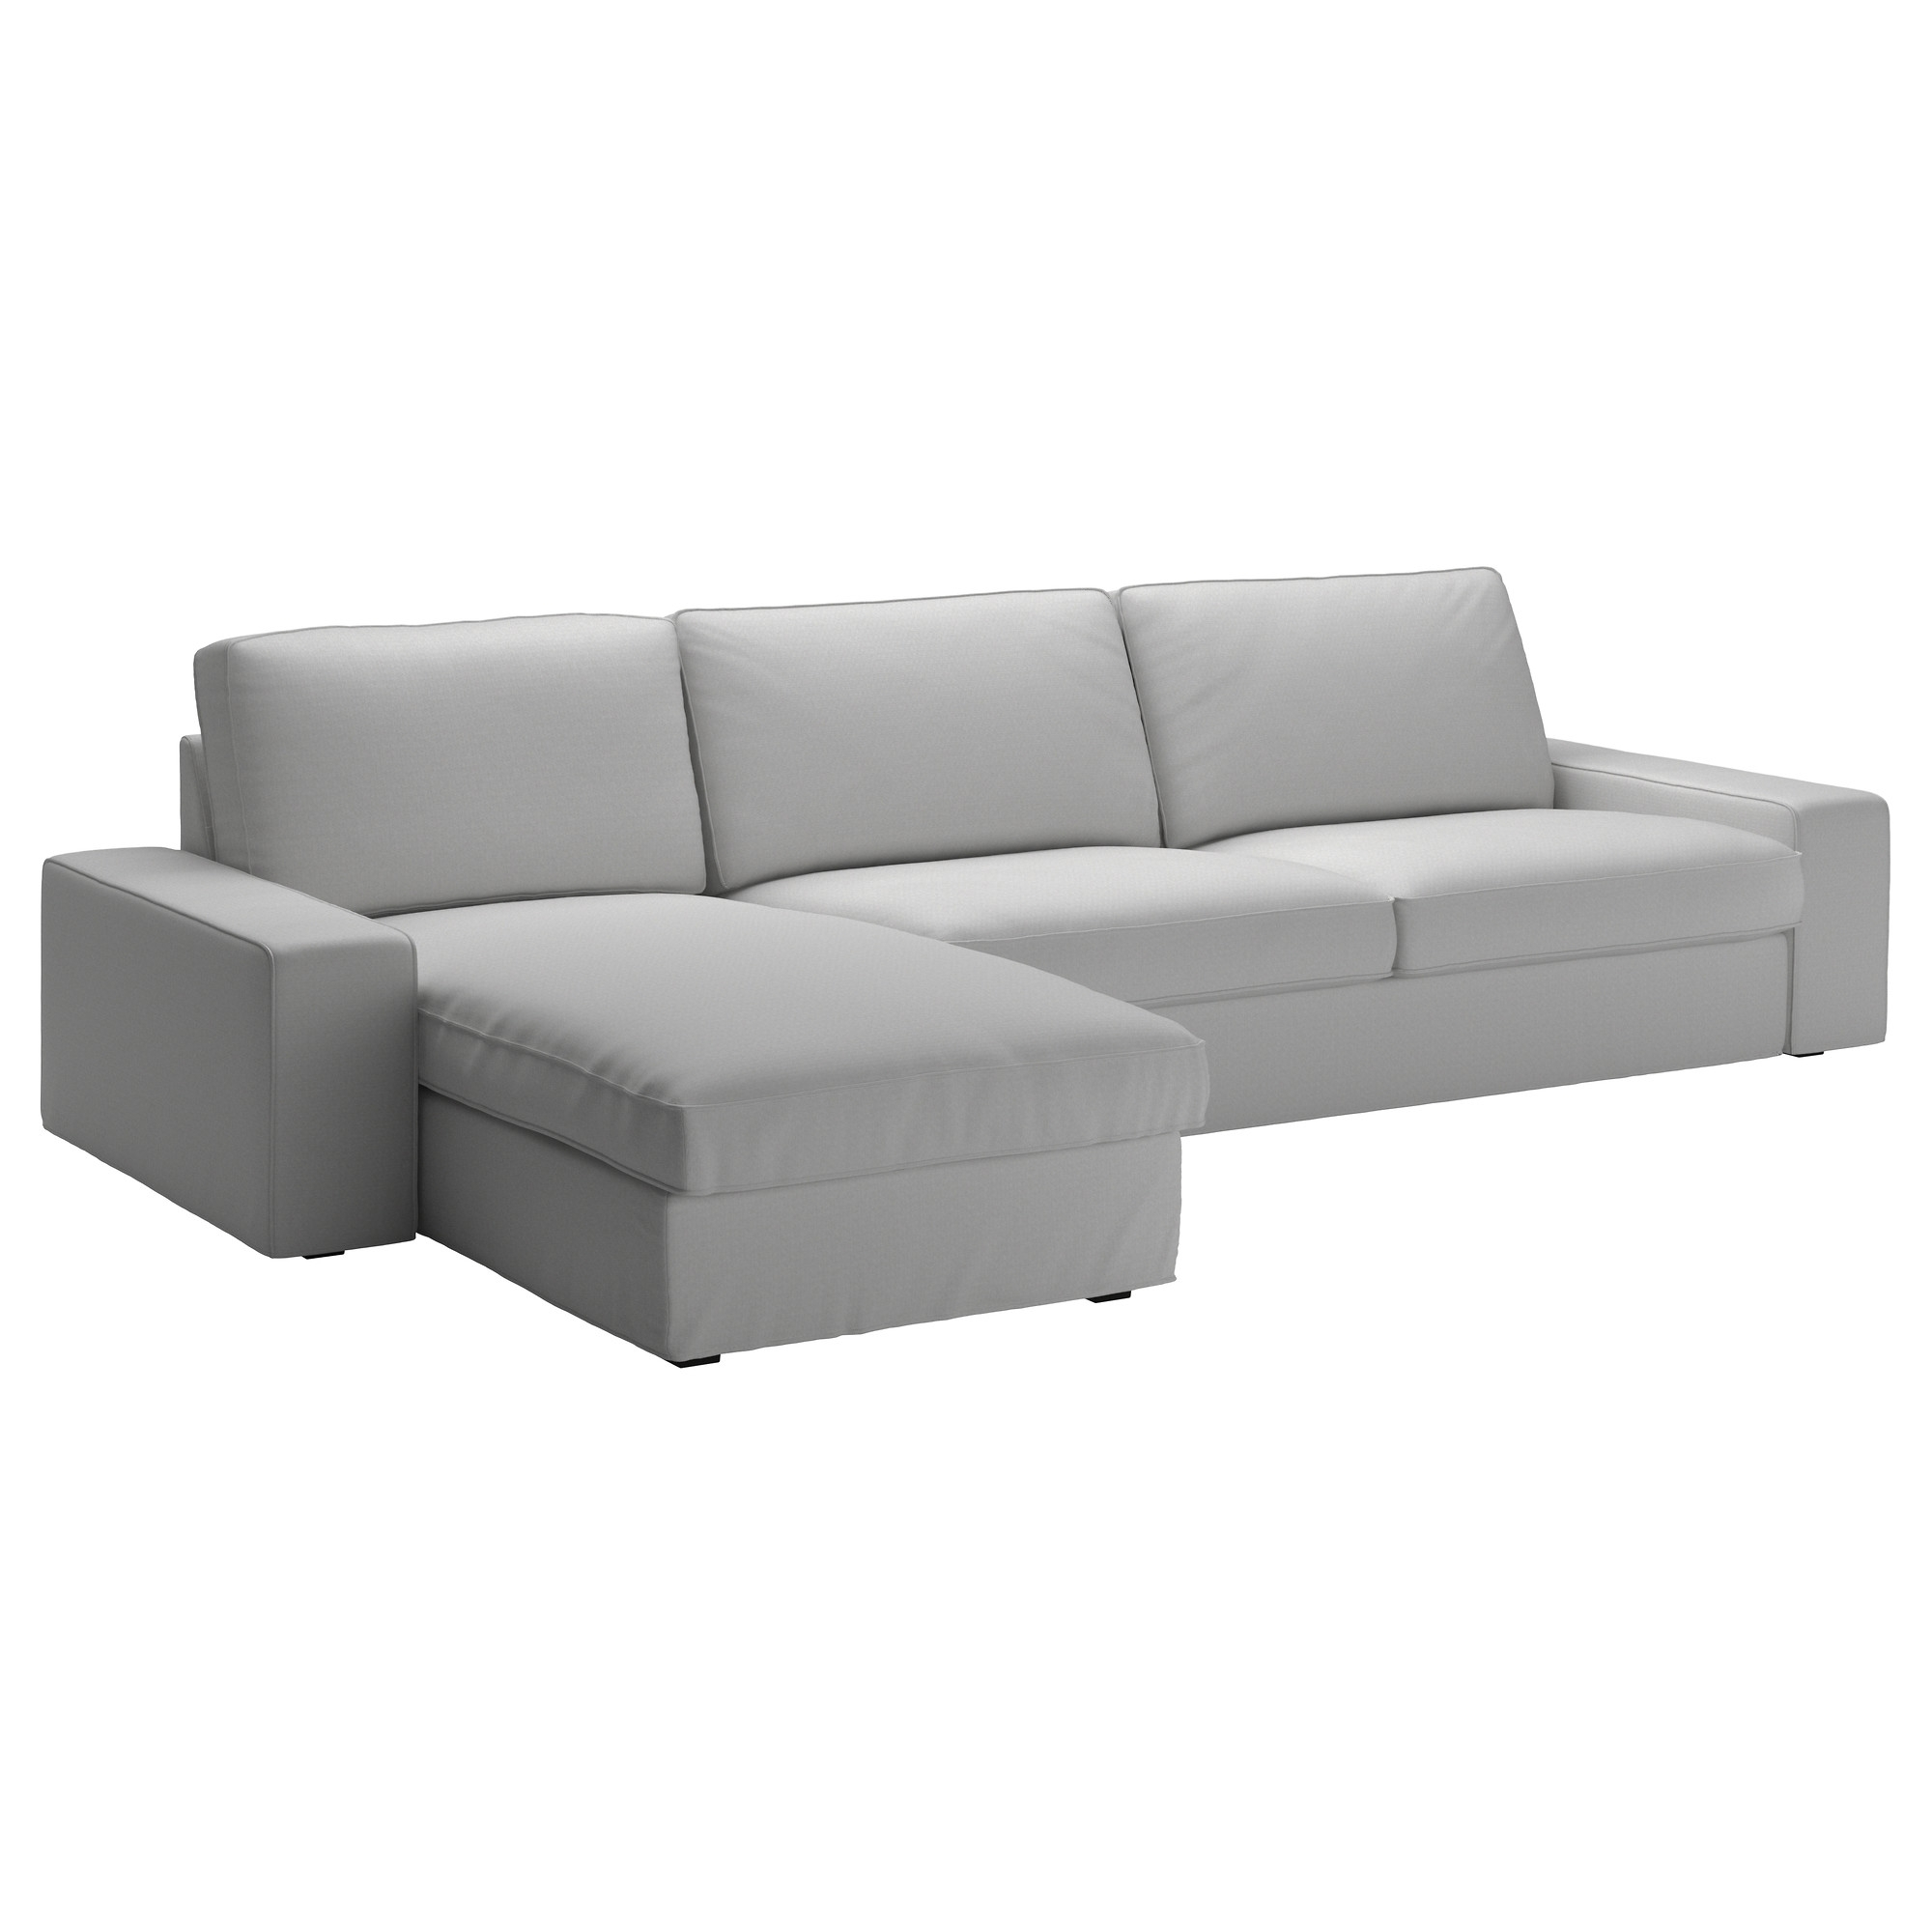 Most Popular Ikea Sectional Sofa Beds Within Kivik Sectional, 4 Seat – Orrsta Light Gray – Ikea (View 10 of 20)